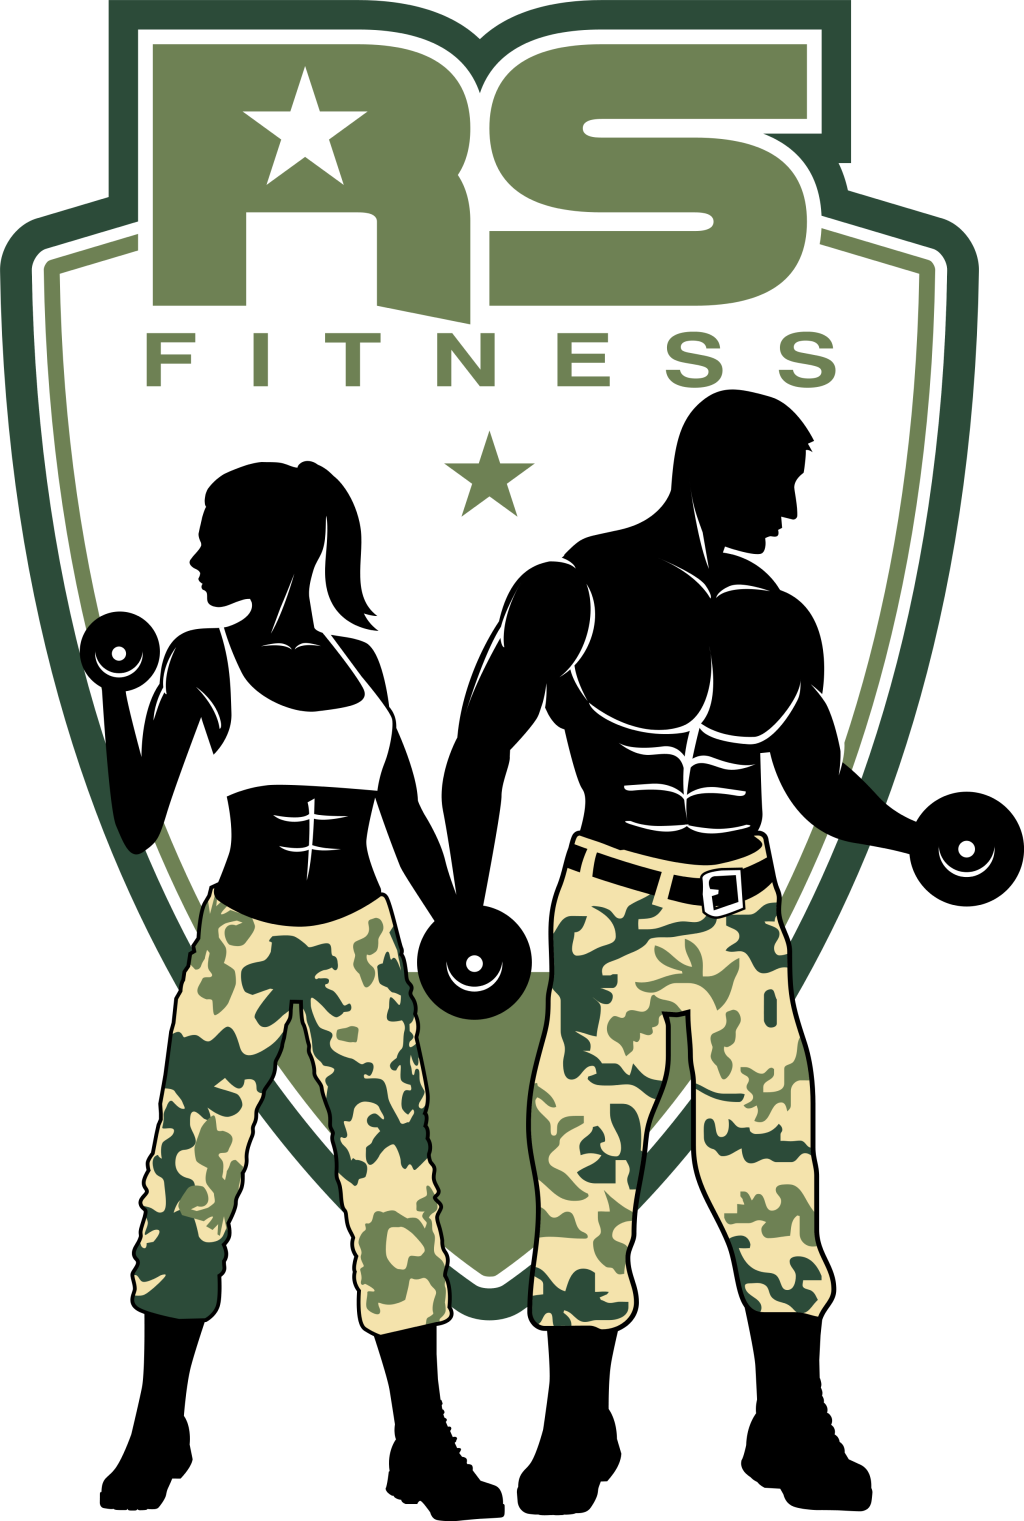 Personal Trainer Houston, Texas - Stephanie Sharp